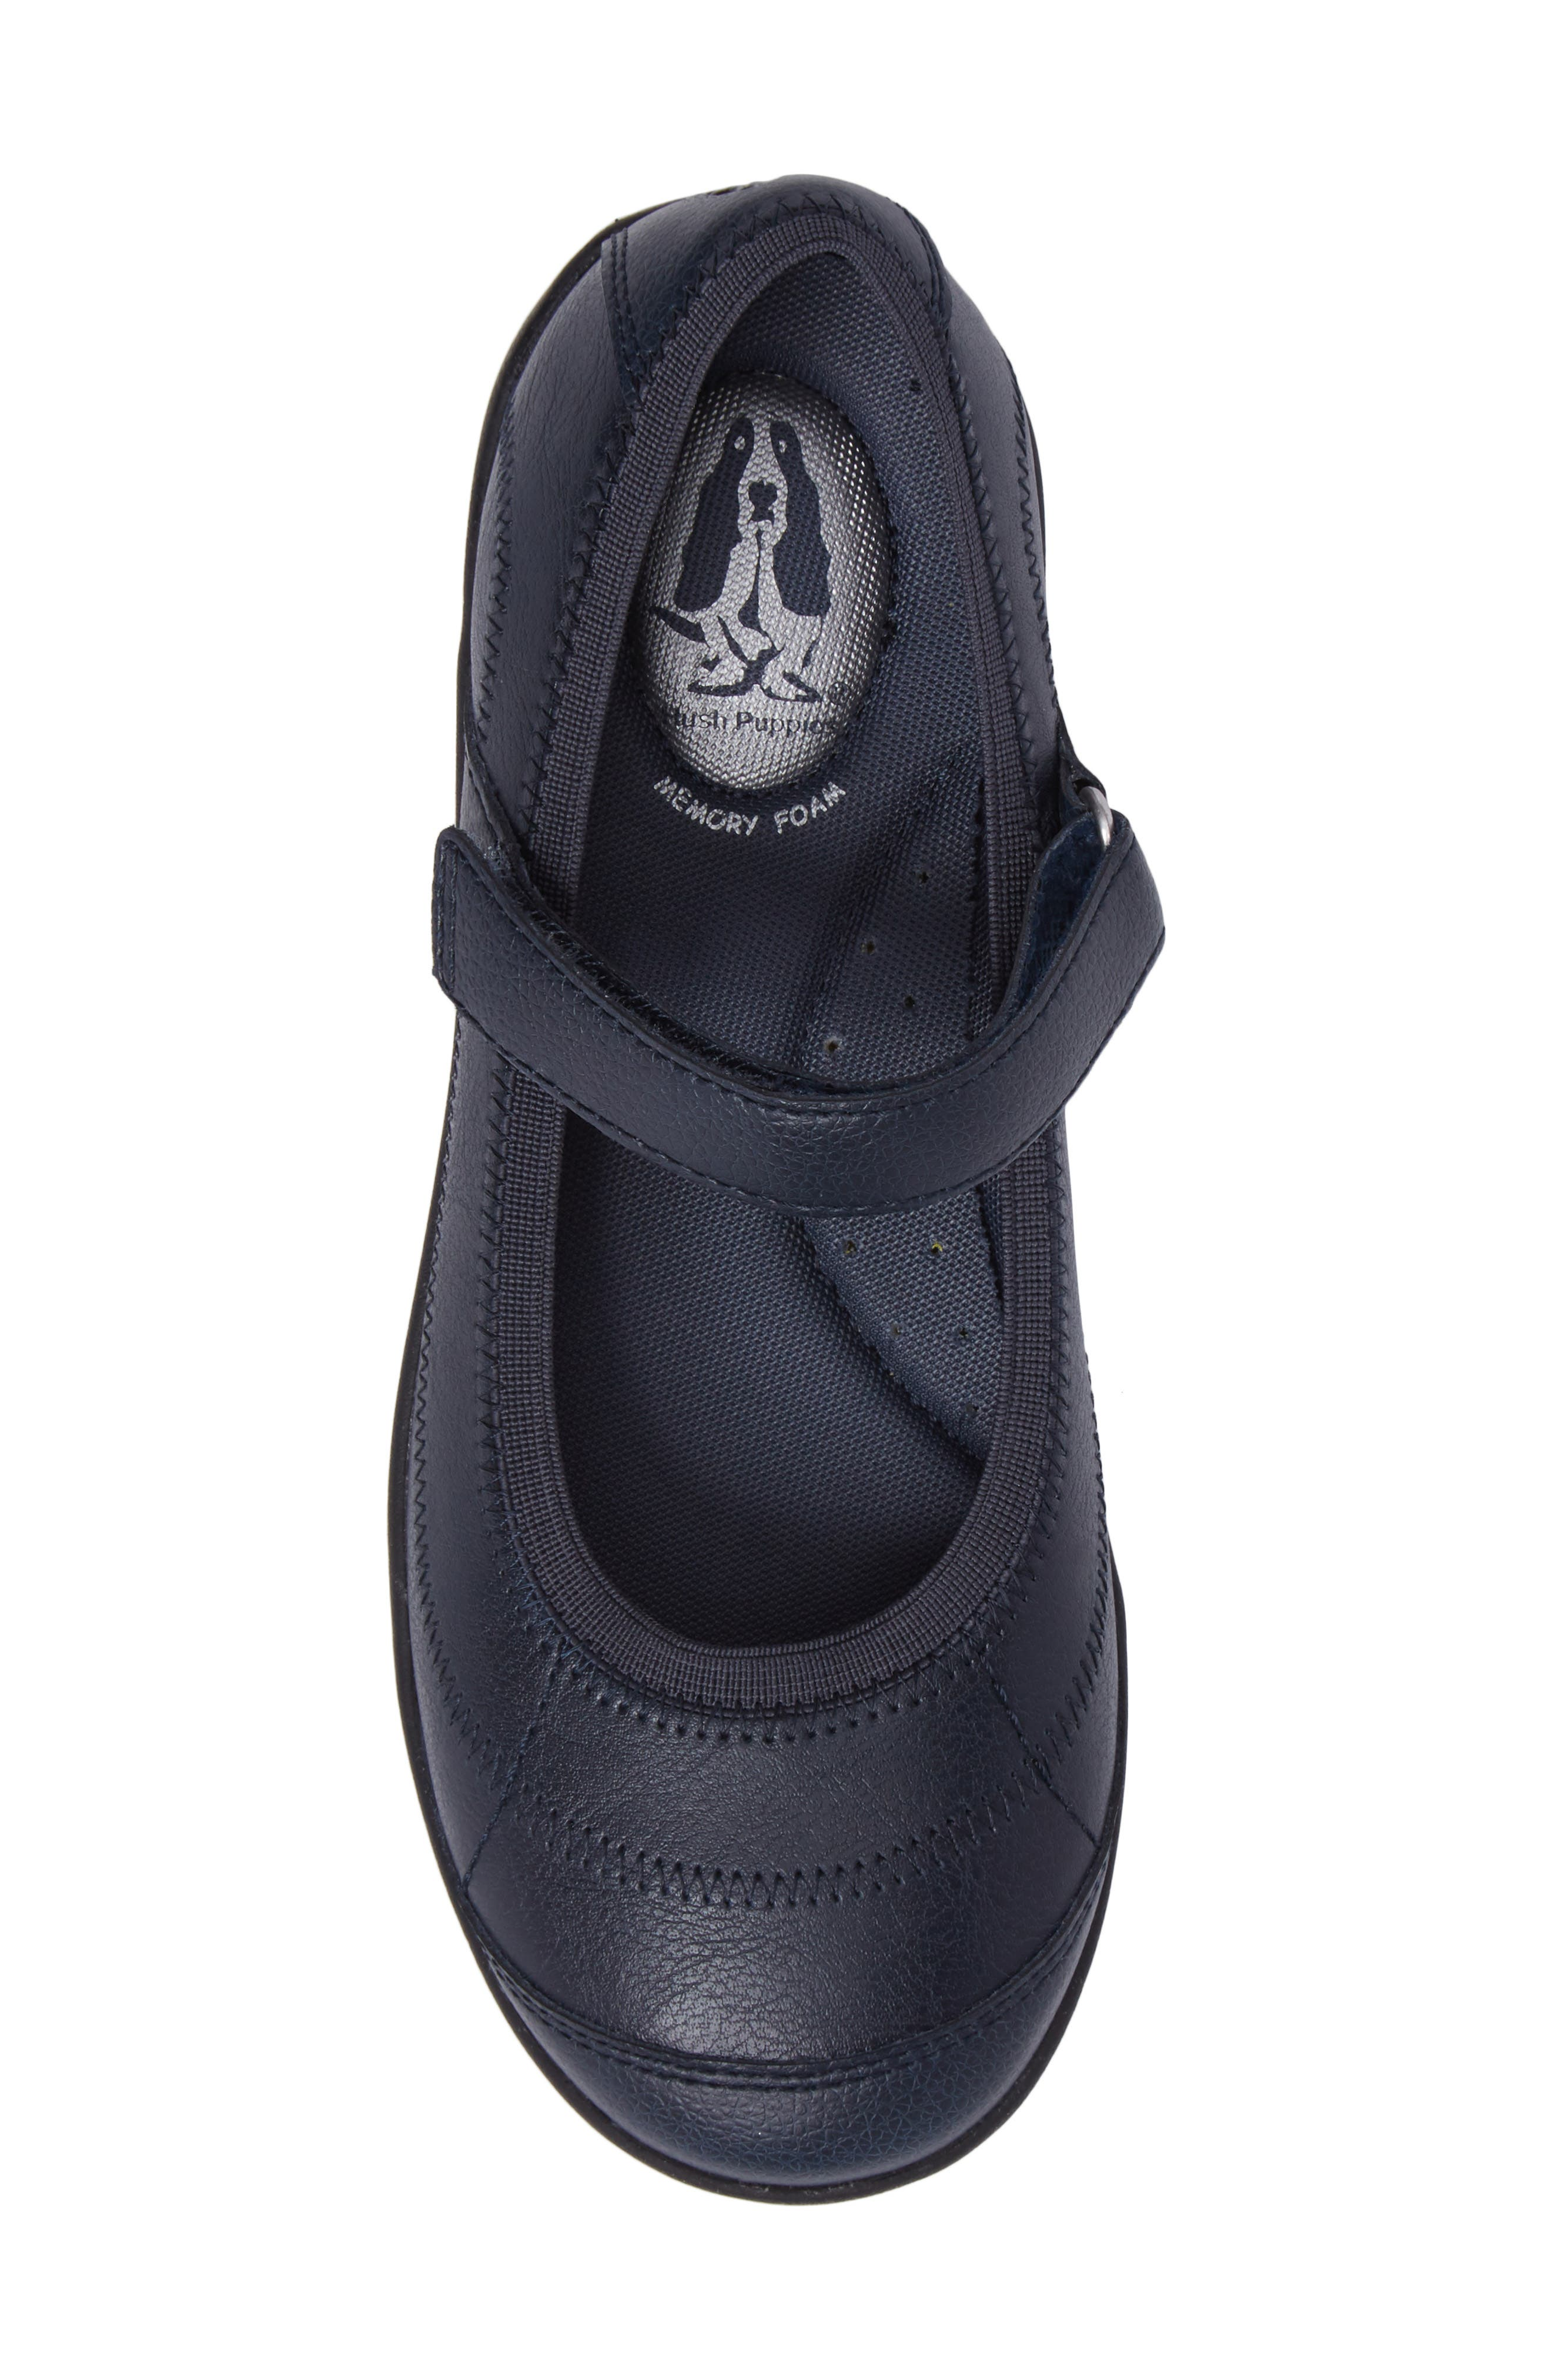 Reese Mary Jane Flat,                             Alternate thumbnail 5, color,                             NAVY LEATHER